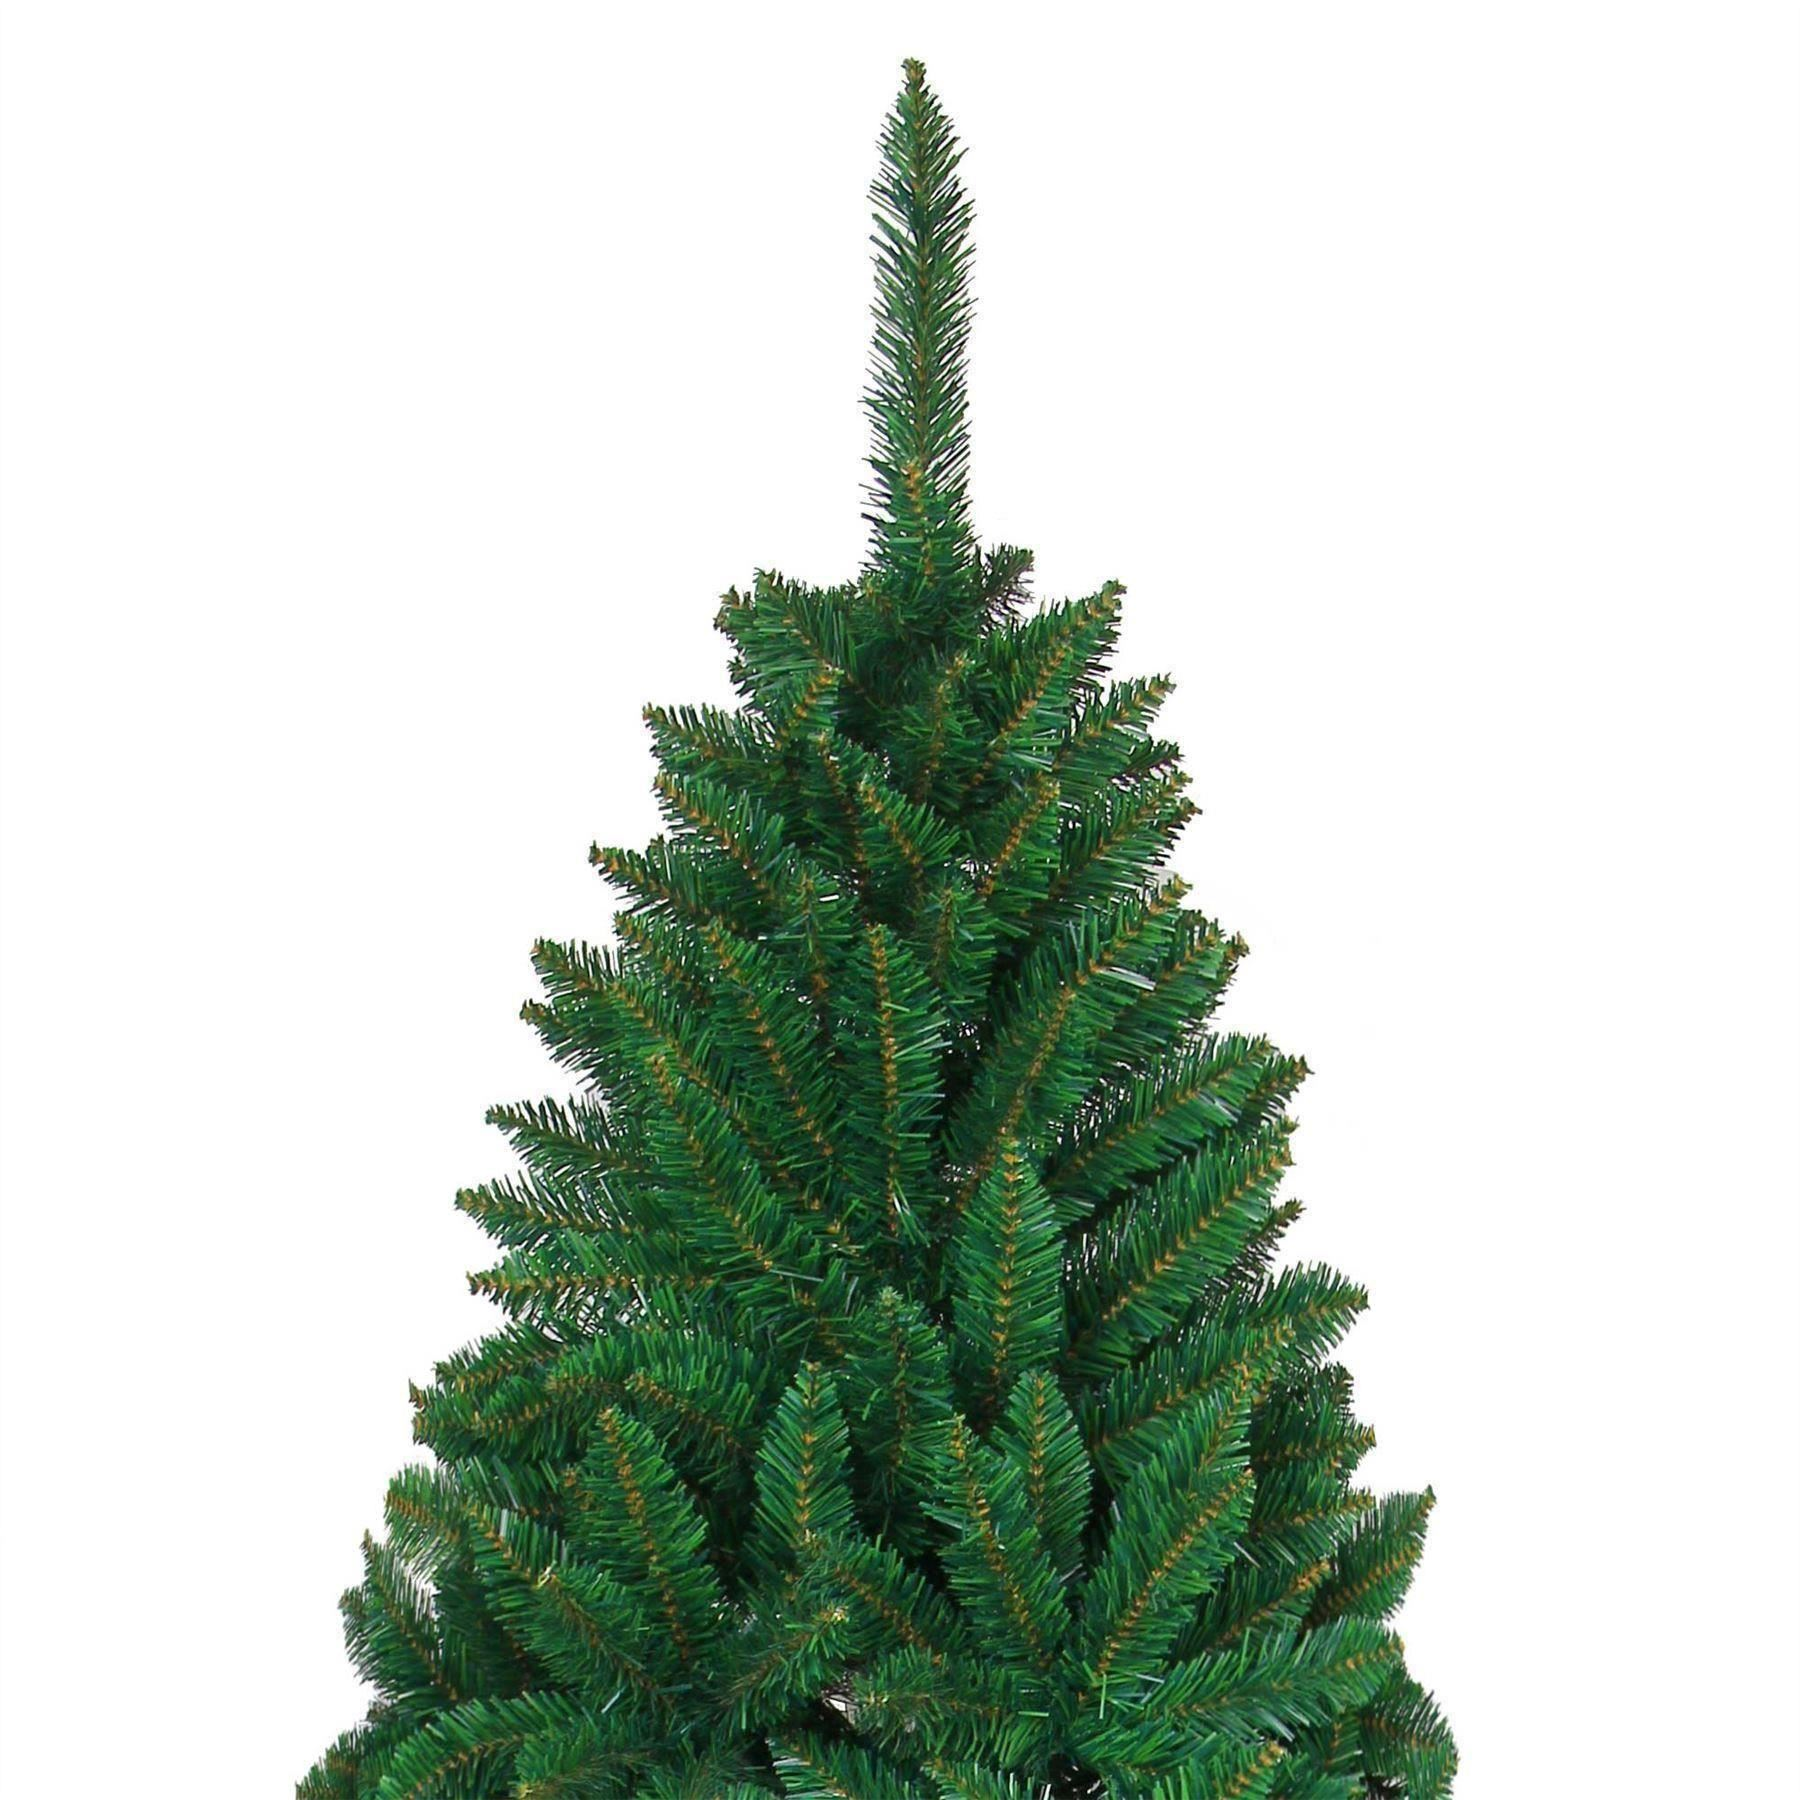 Ft green christmas tree with artificial imperial pine